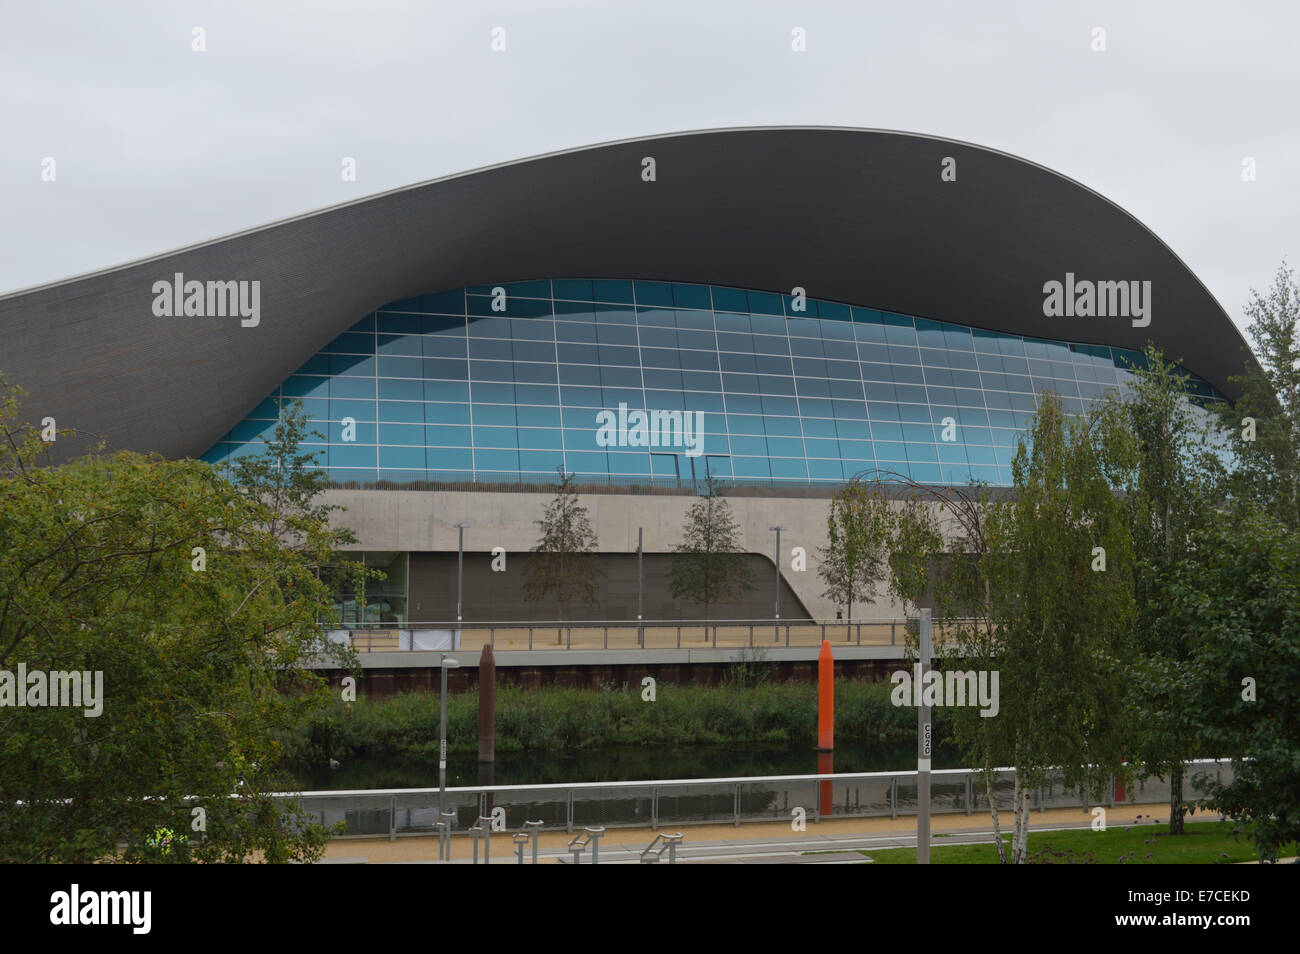 stratford olympic park swimming pool the aquatic centre swimming pool in the olympic park at